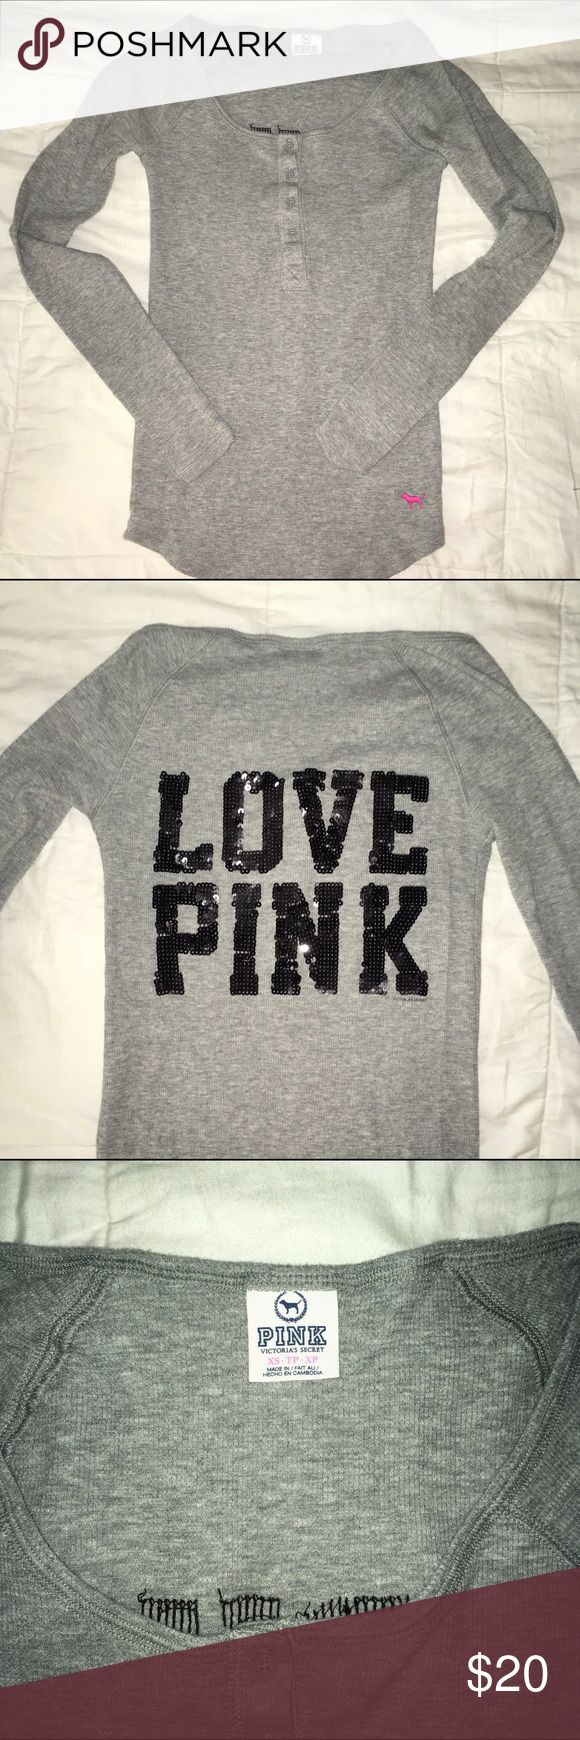 Victoria's Secret Pink Waffle Shirt This is a size xs lightweight grey waffle shirt from VS pink. The back says love pink in black sequence, and this shirt is in great condition! PINK Victoria's Secret Tops Tees - Long Sleeve